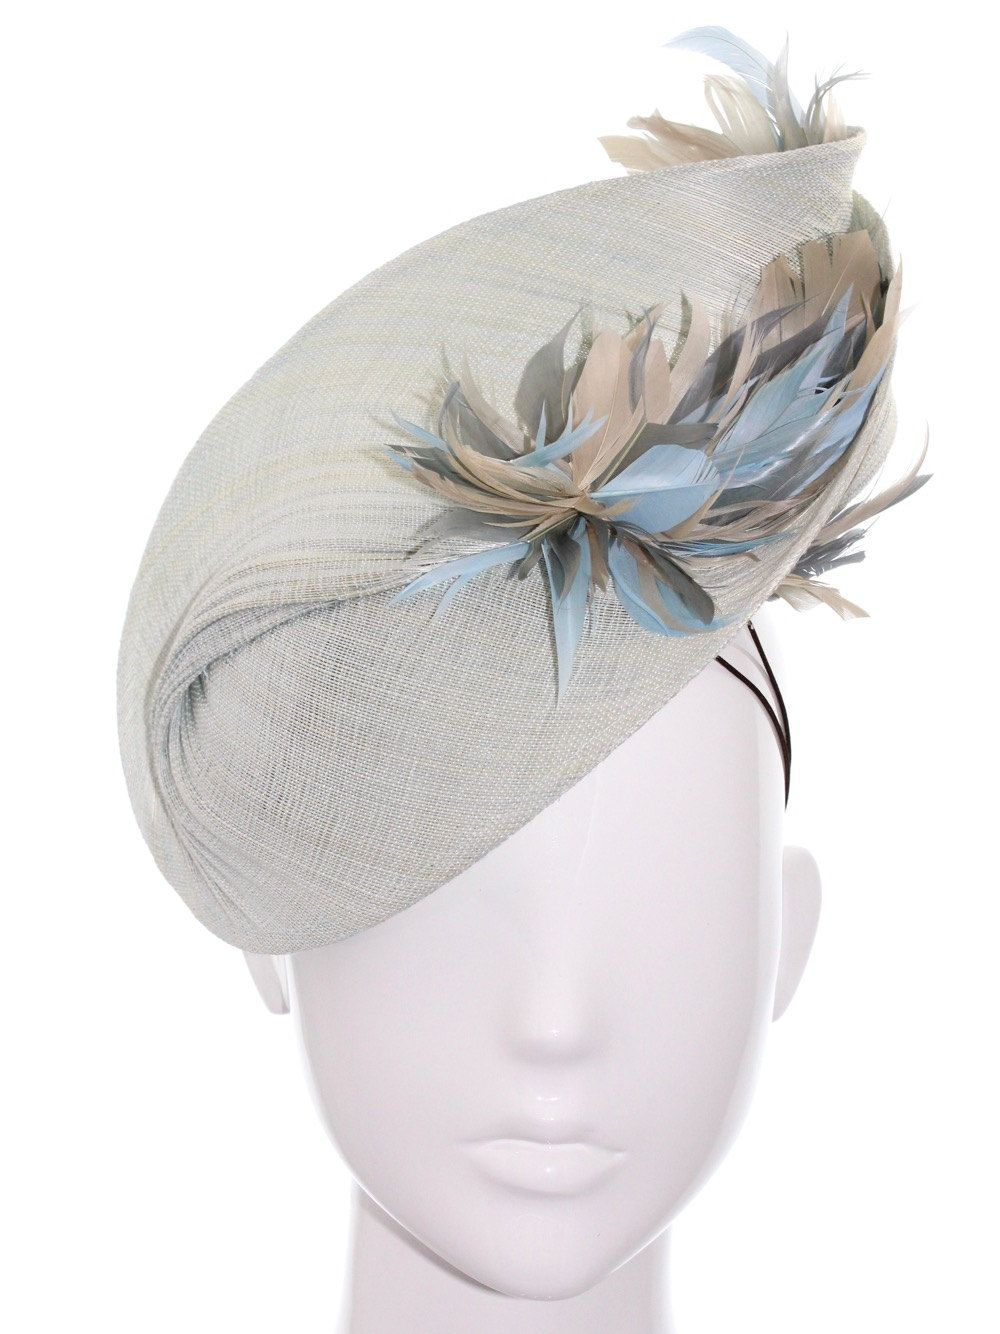 Duck Egg Blue Bias Hat with Feathers -Racing Carnival, Bespoke Headwear by BonnieEvelynMilliner on Etsy